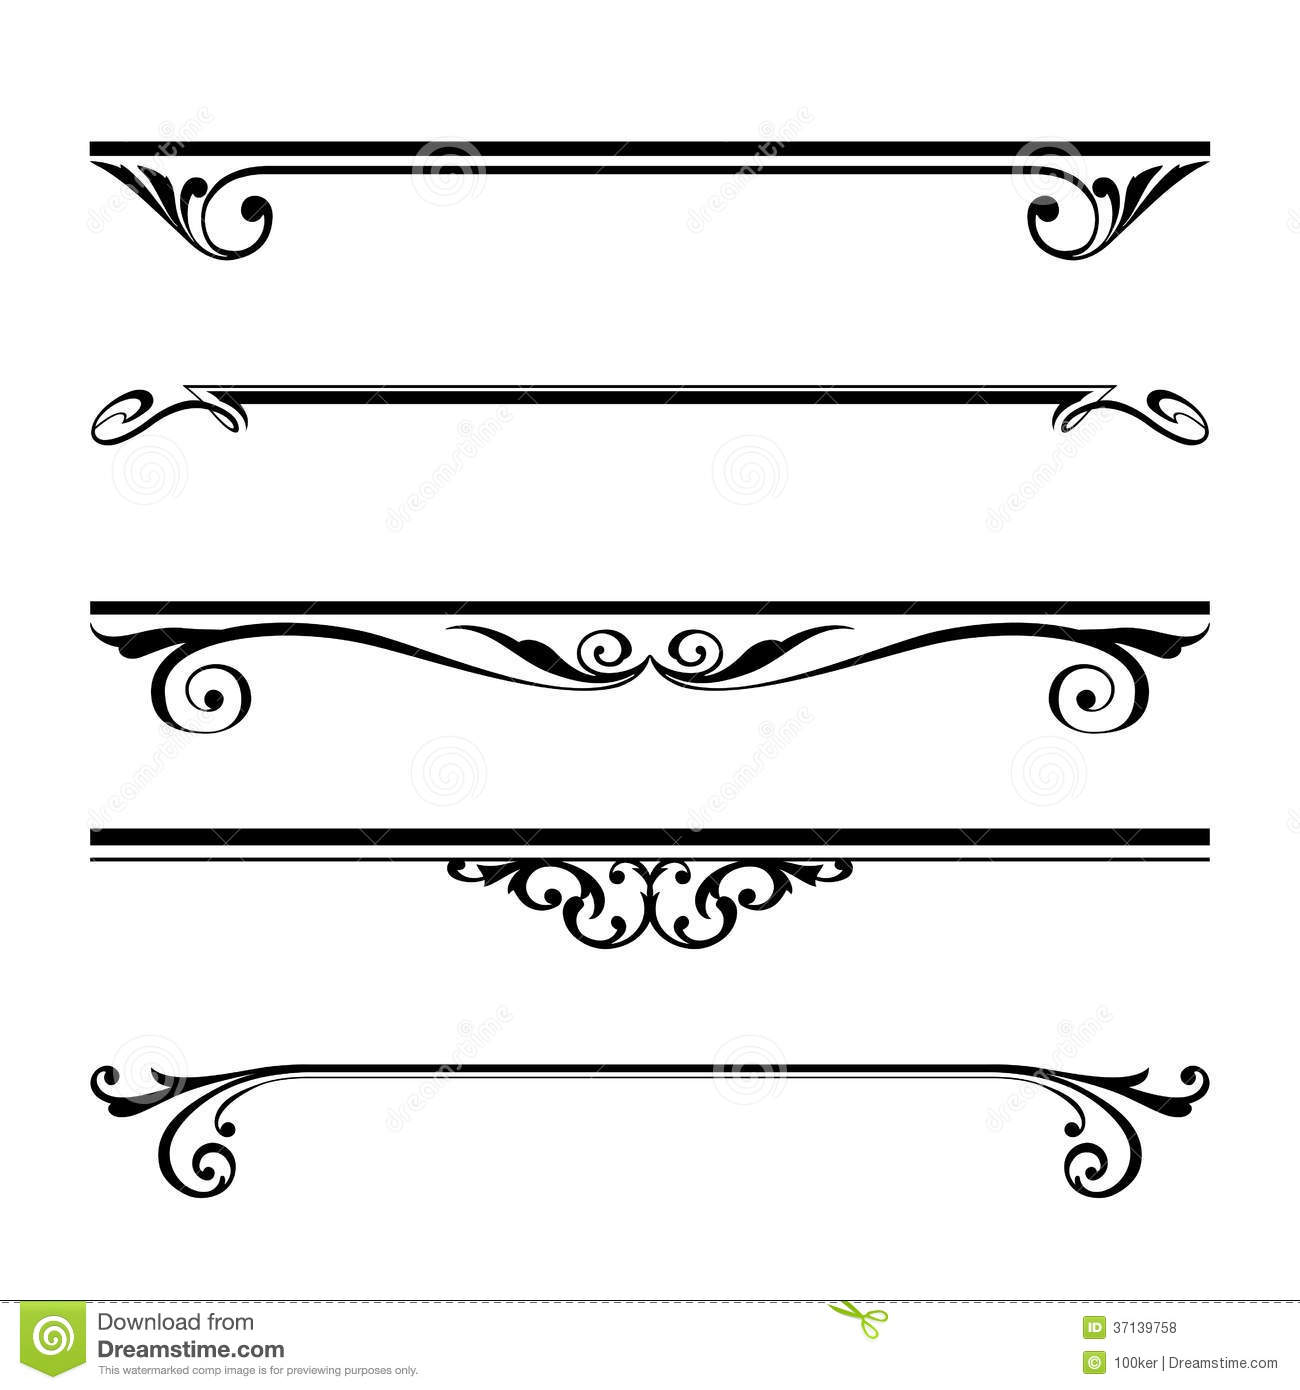 Drawing Vector Lines In Photo Cs : Decorative lines vector images line clip